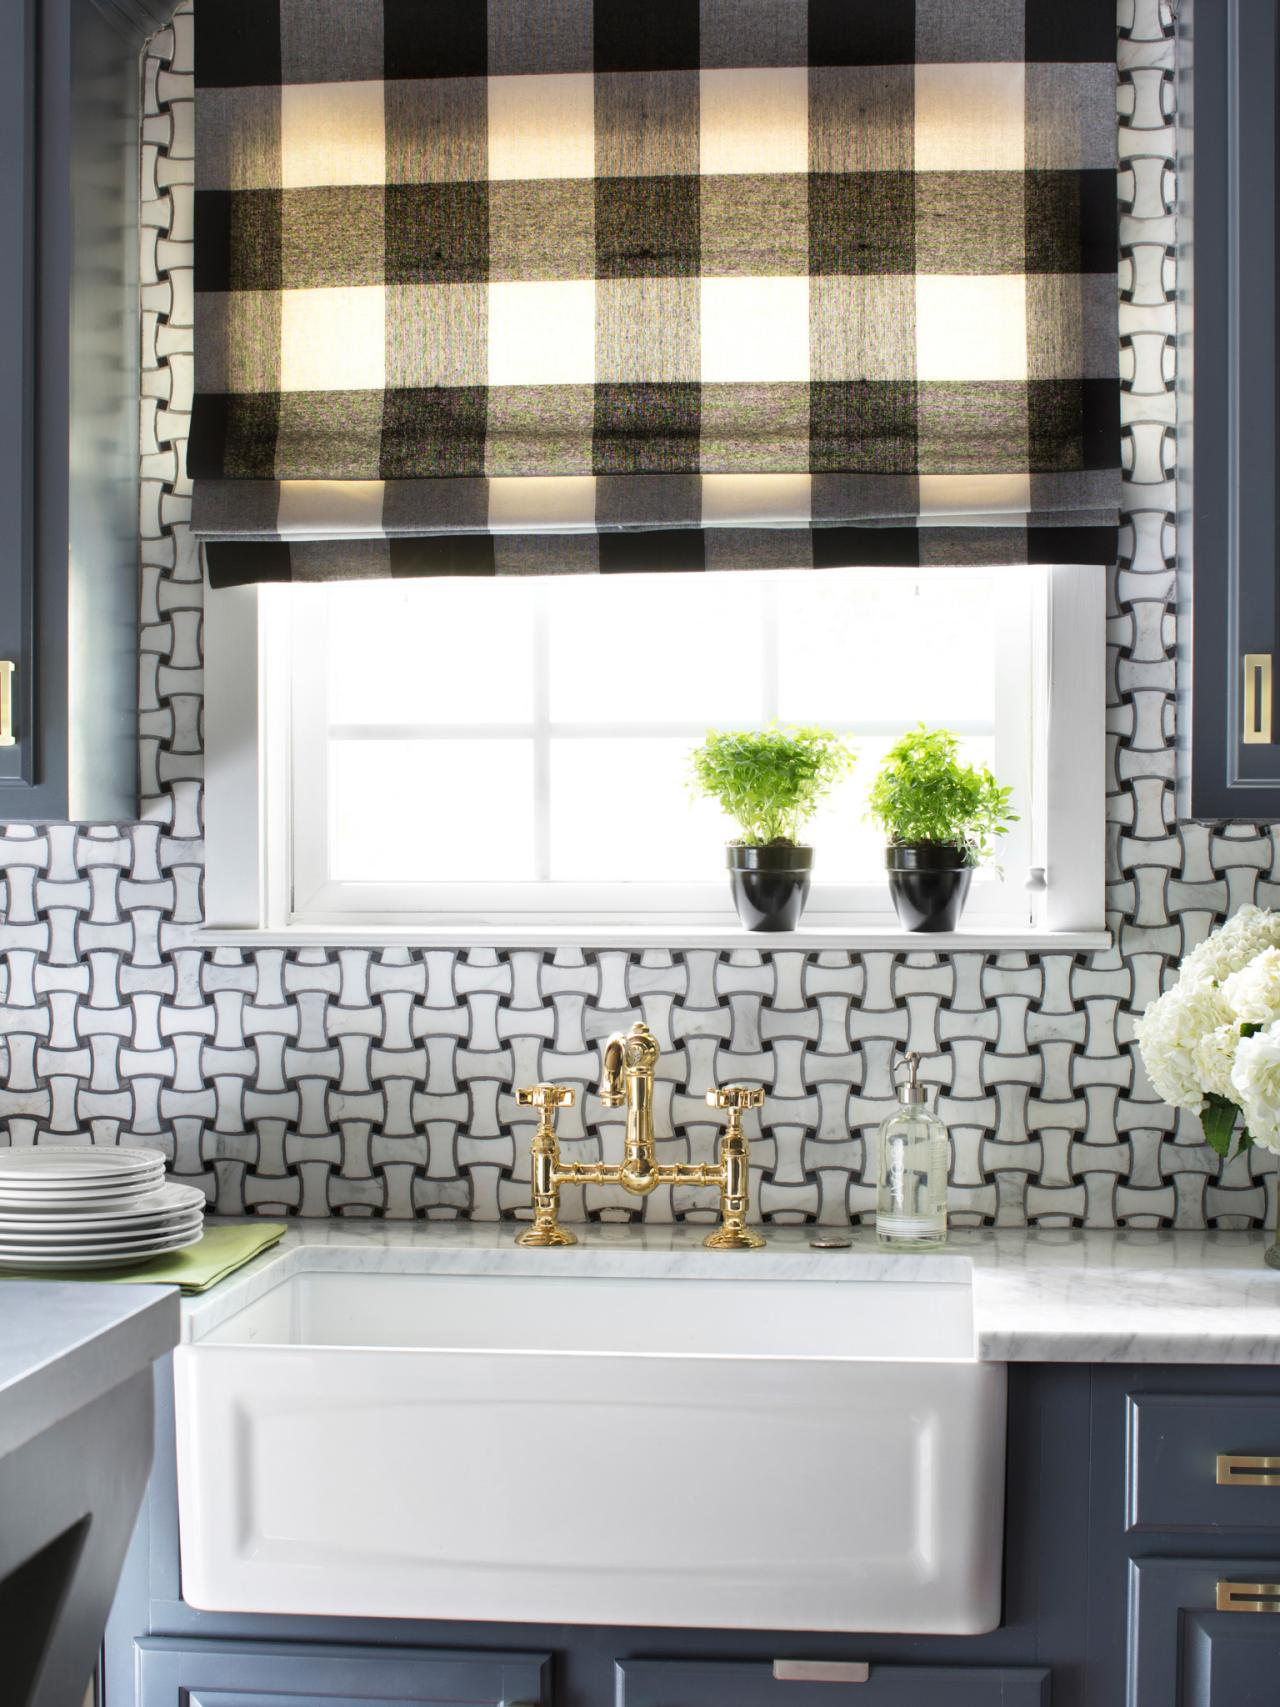 Designer Kitchen Window Treatments Hgtv Pictures Ideas Hgtv